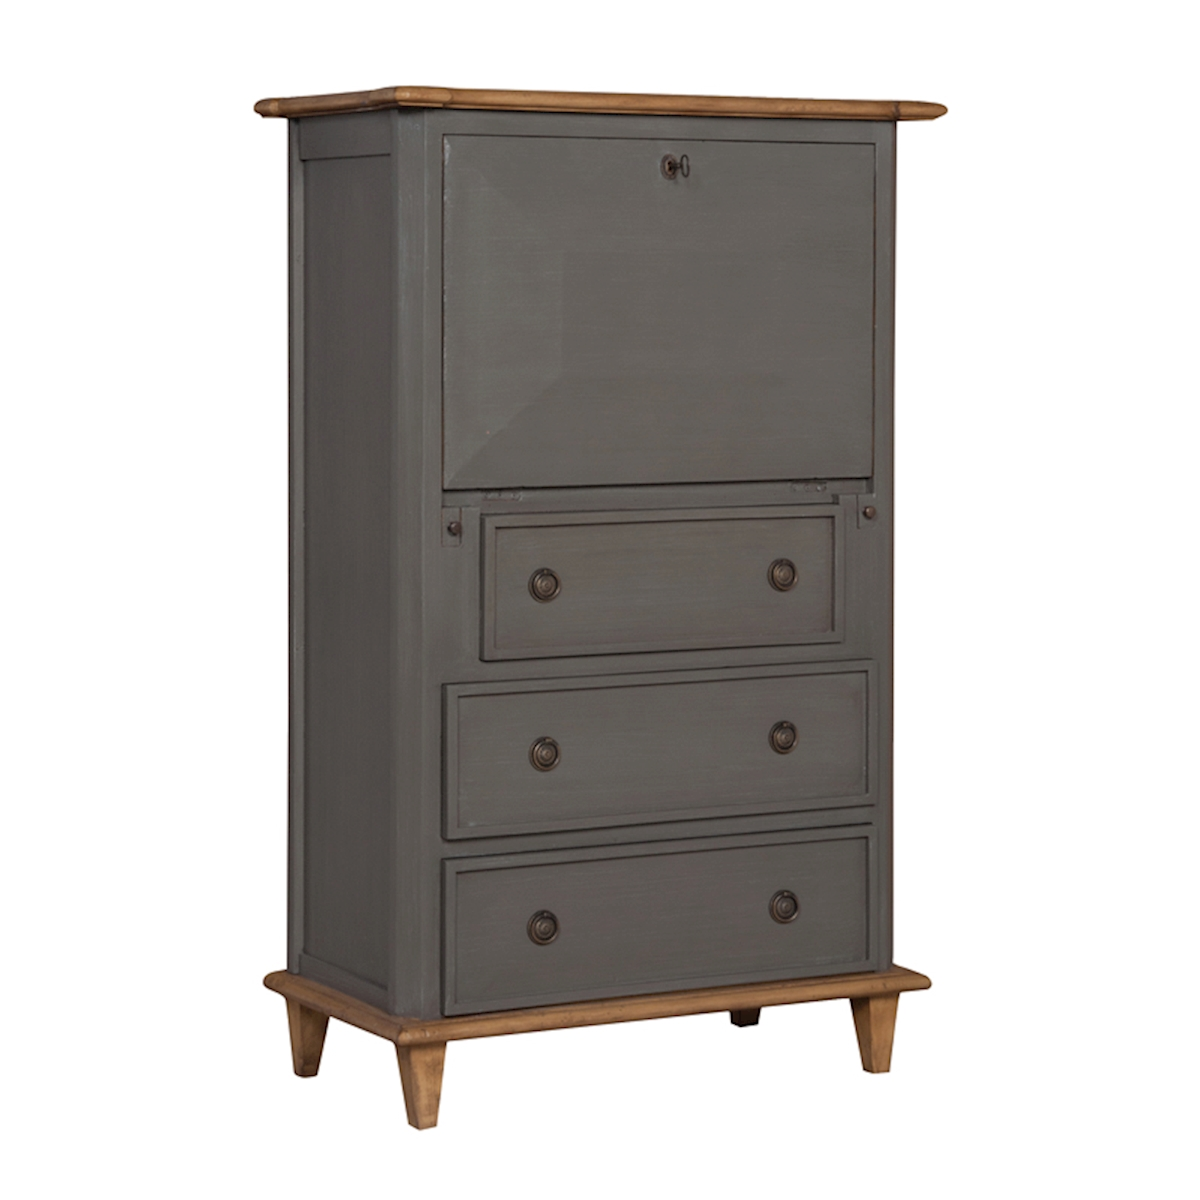 Manor Secretary 644502 | ELK Home